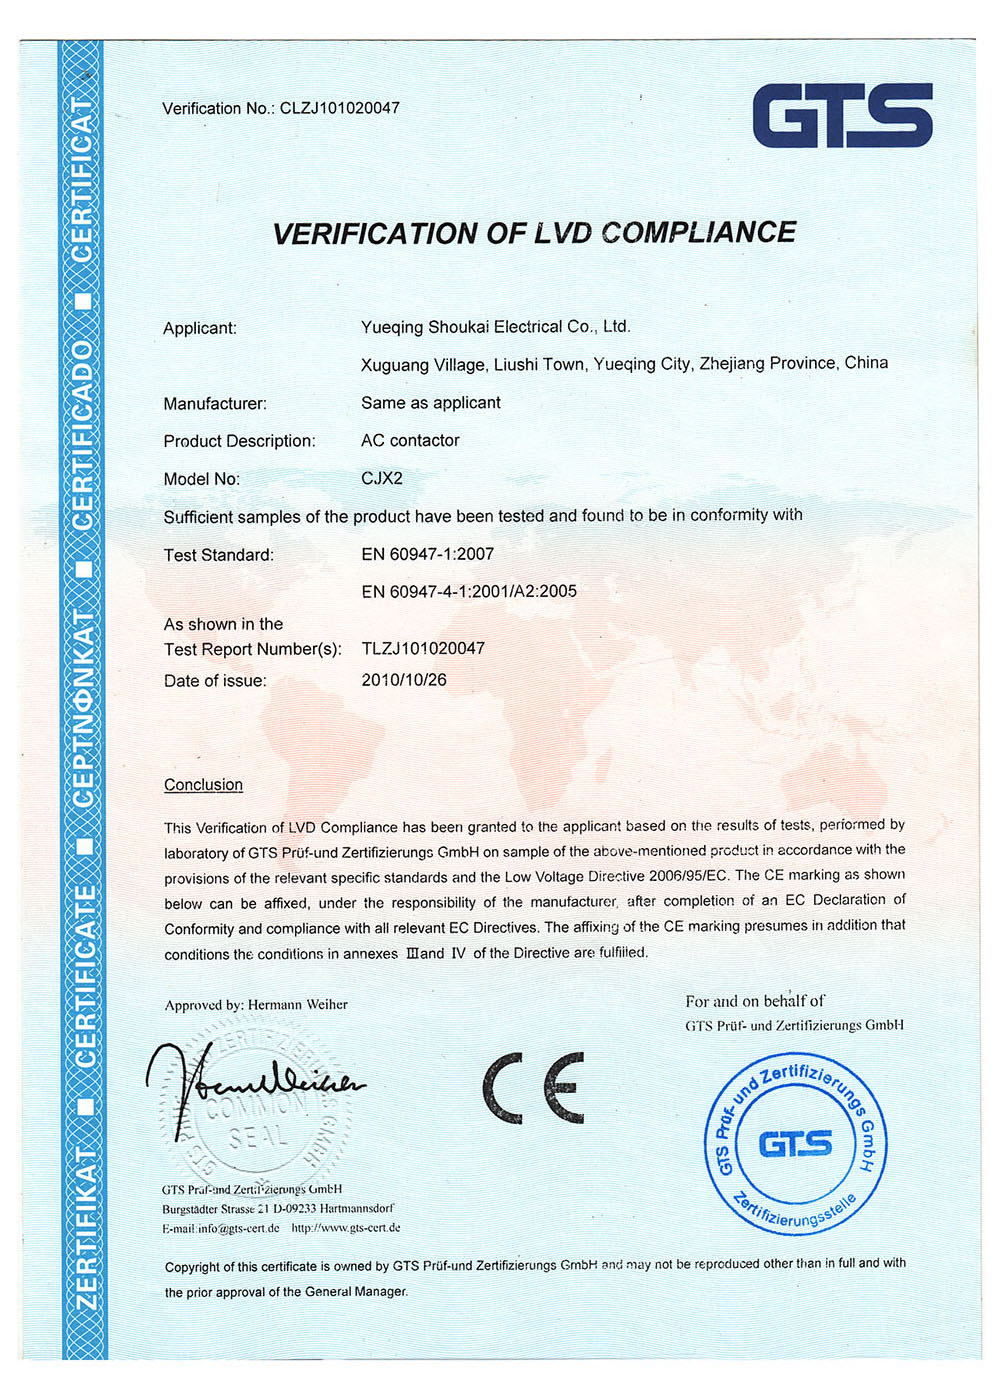 VERIFICATION OF LVD COMPLIANCE